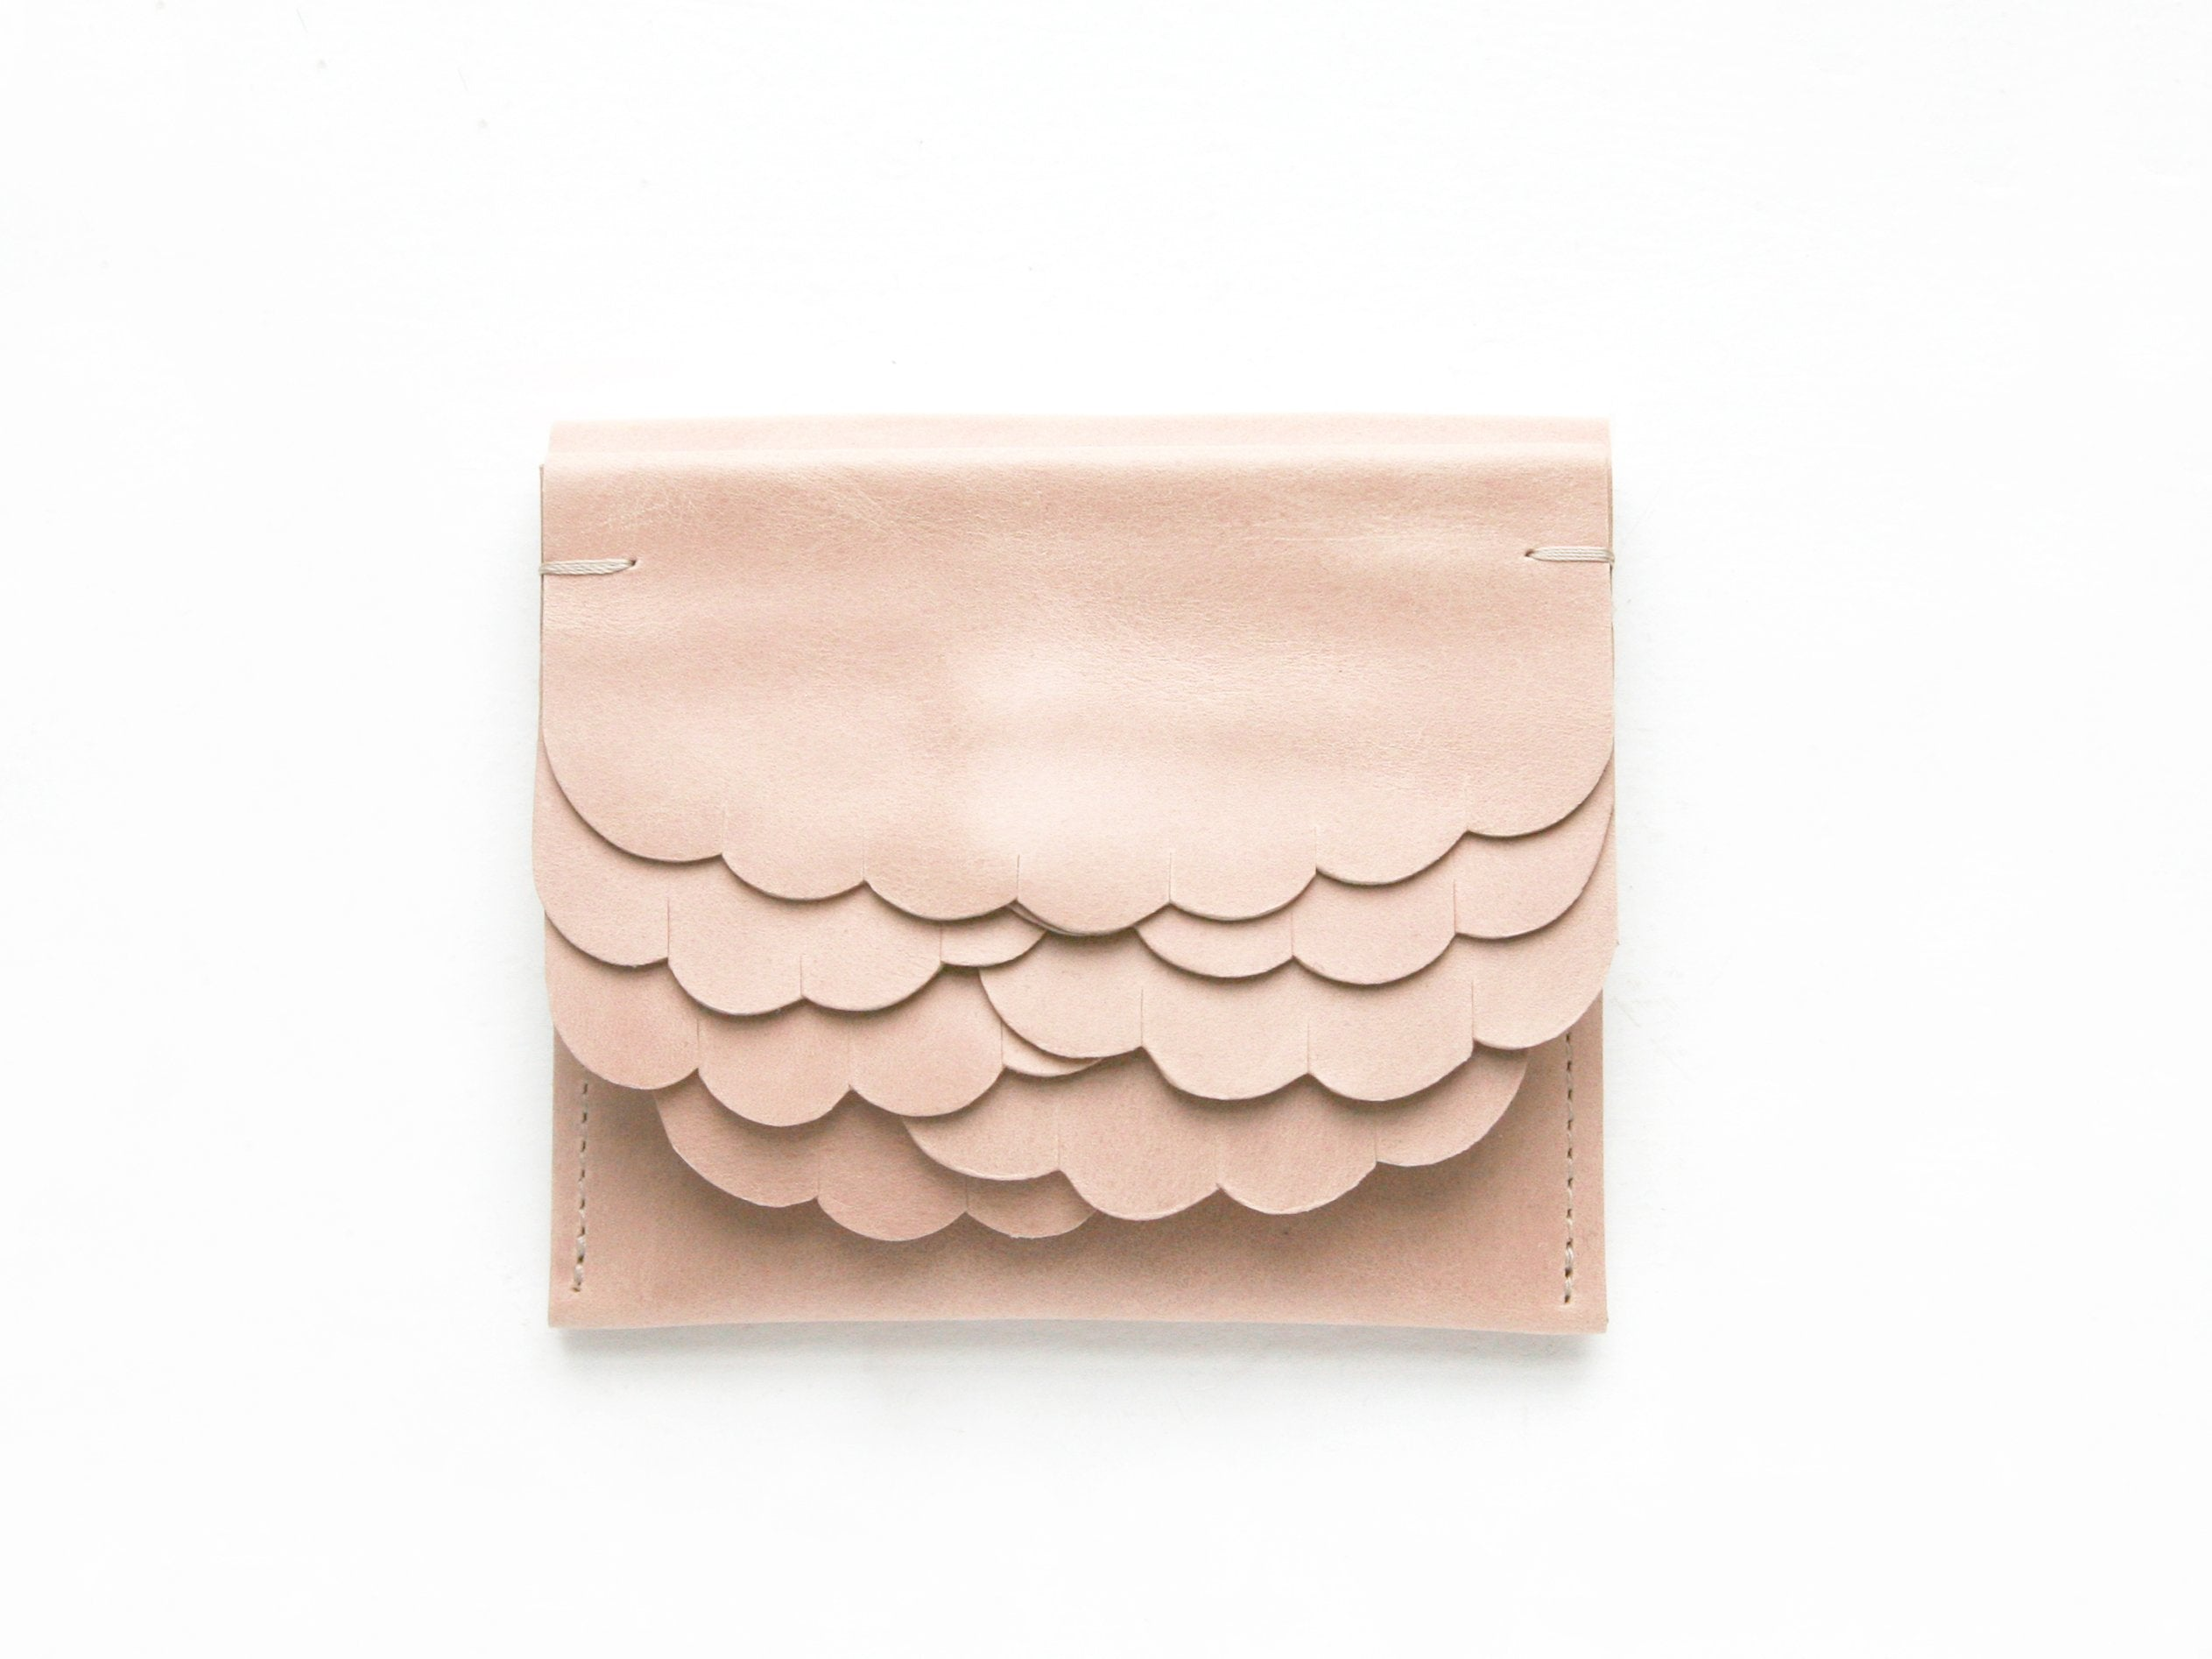 While wallet Powder Pink